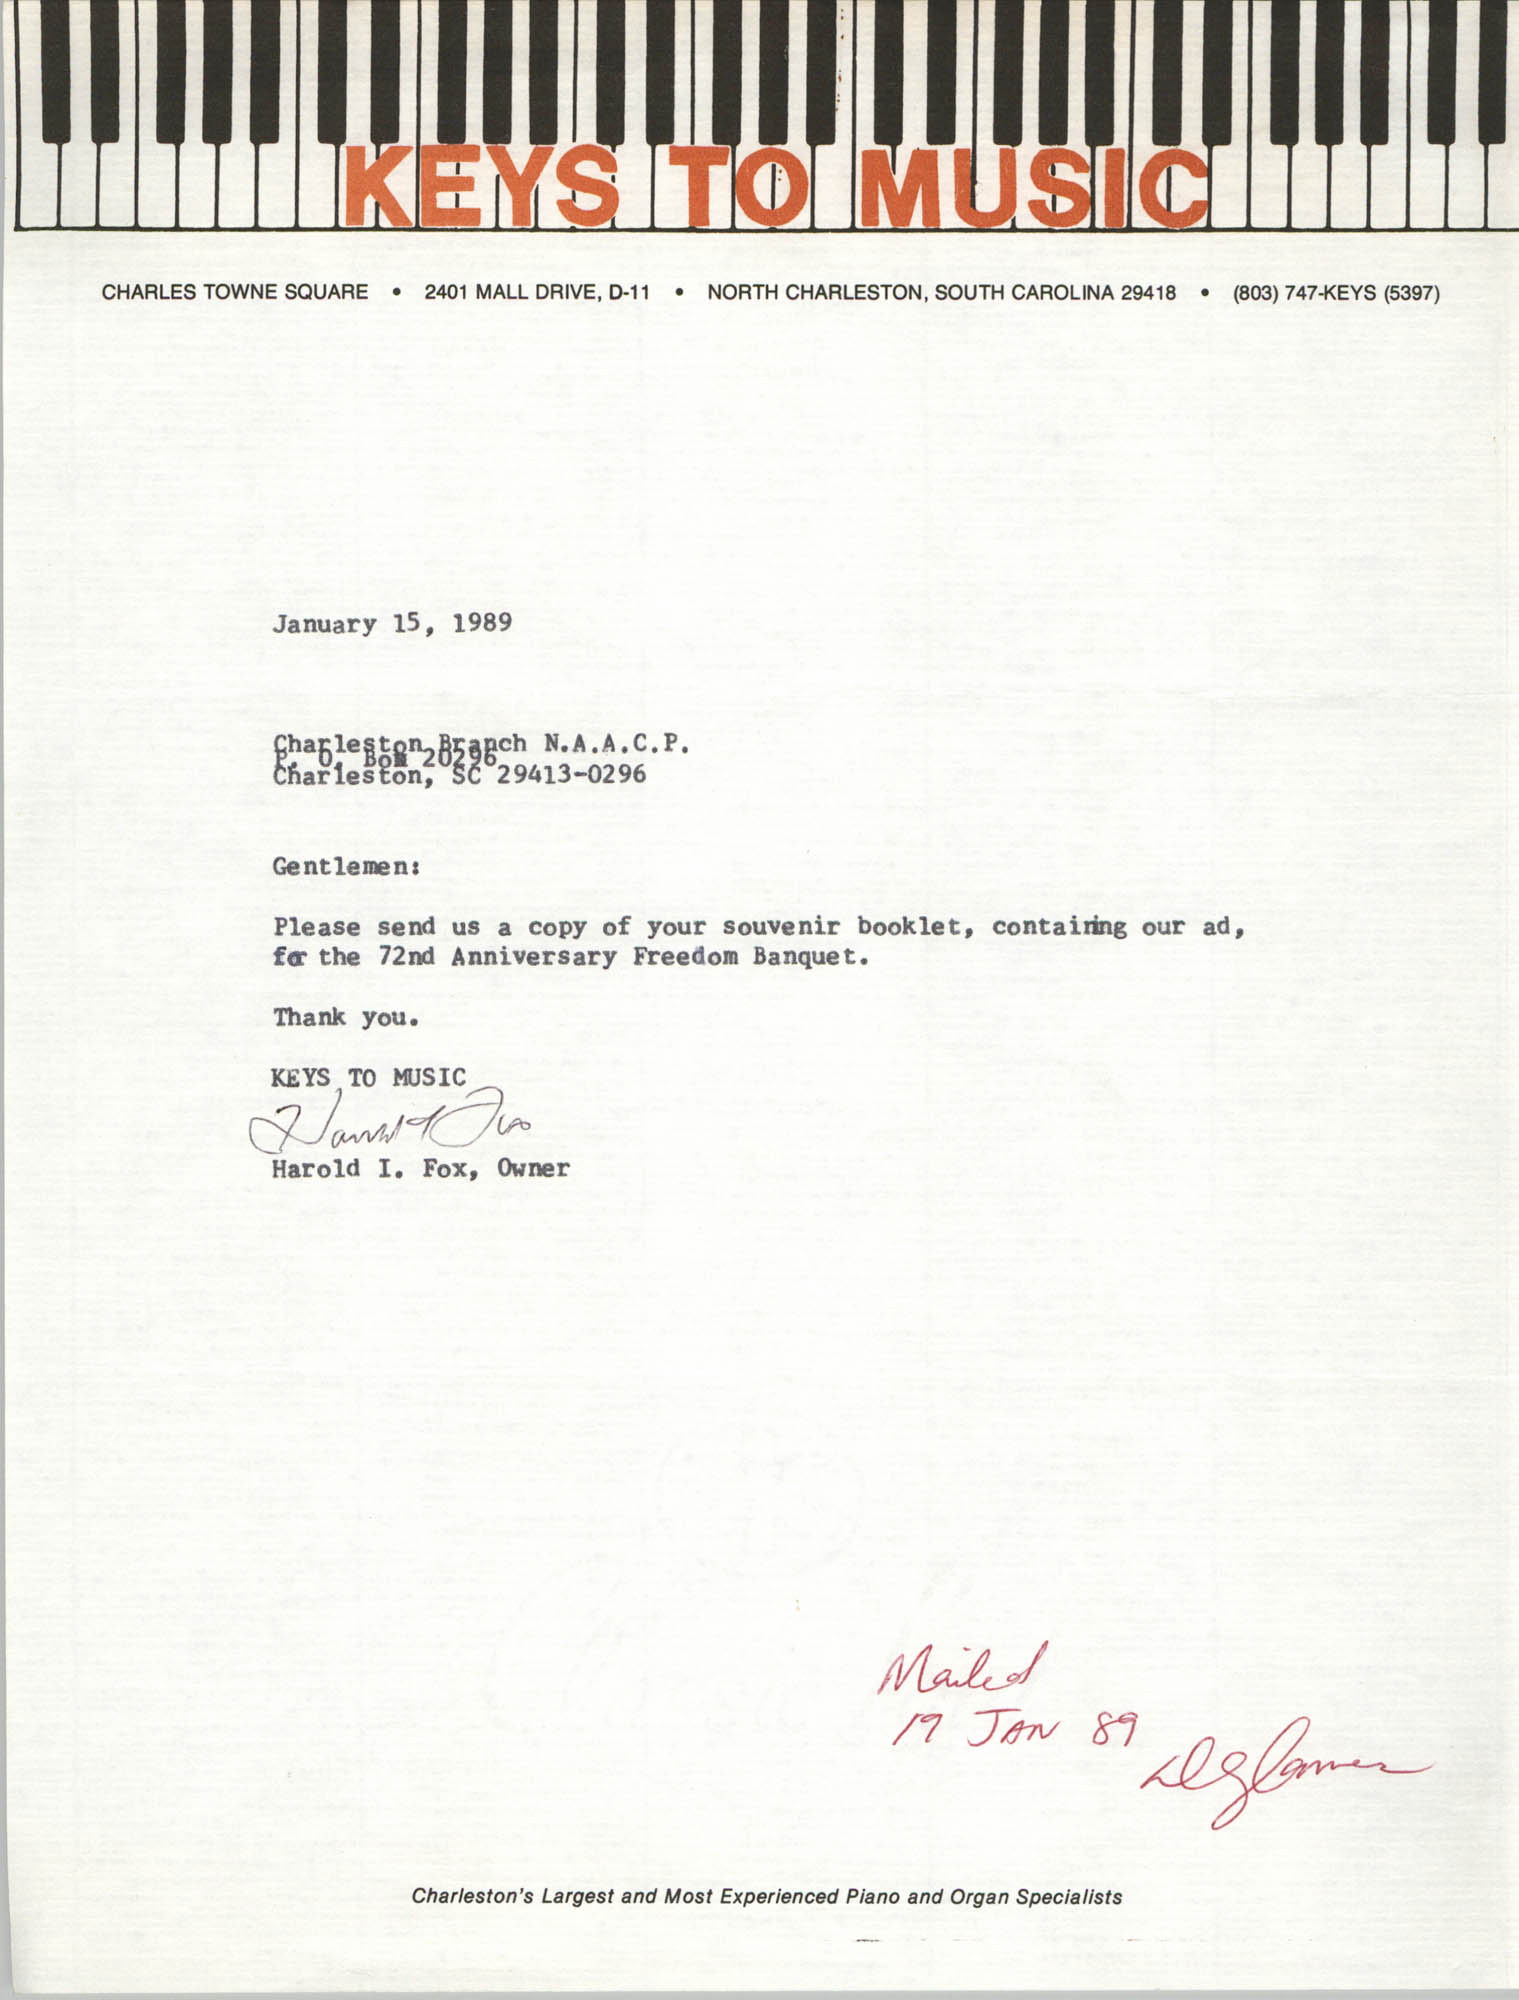 Letter from Harold I. Fox to Charleston Branch of the NAACP, January 15, 1989